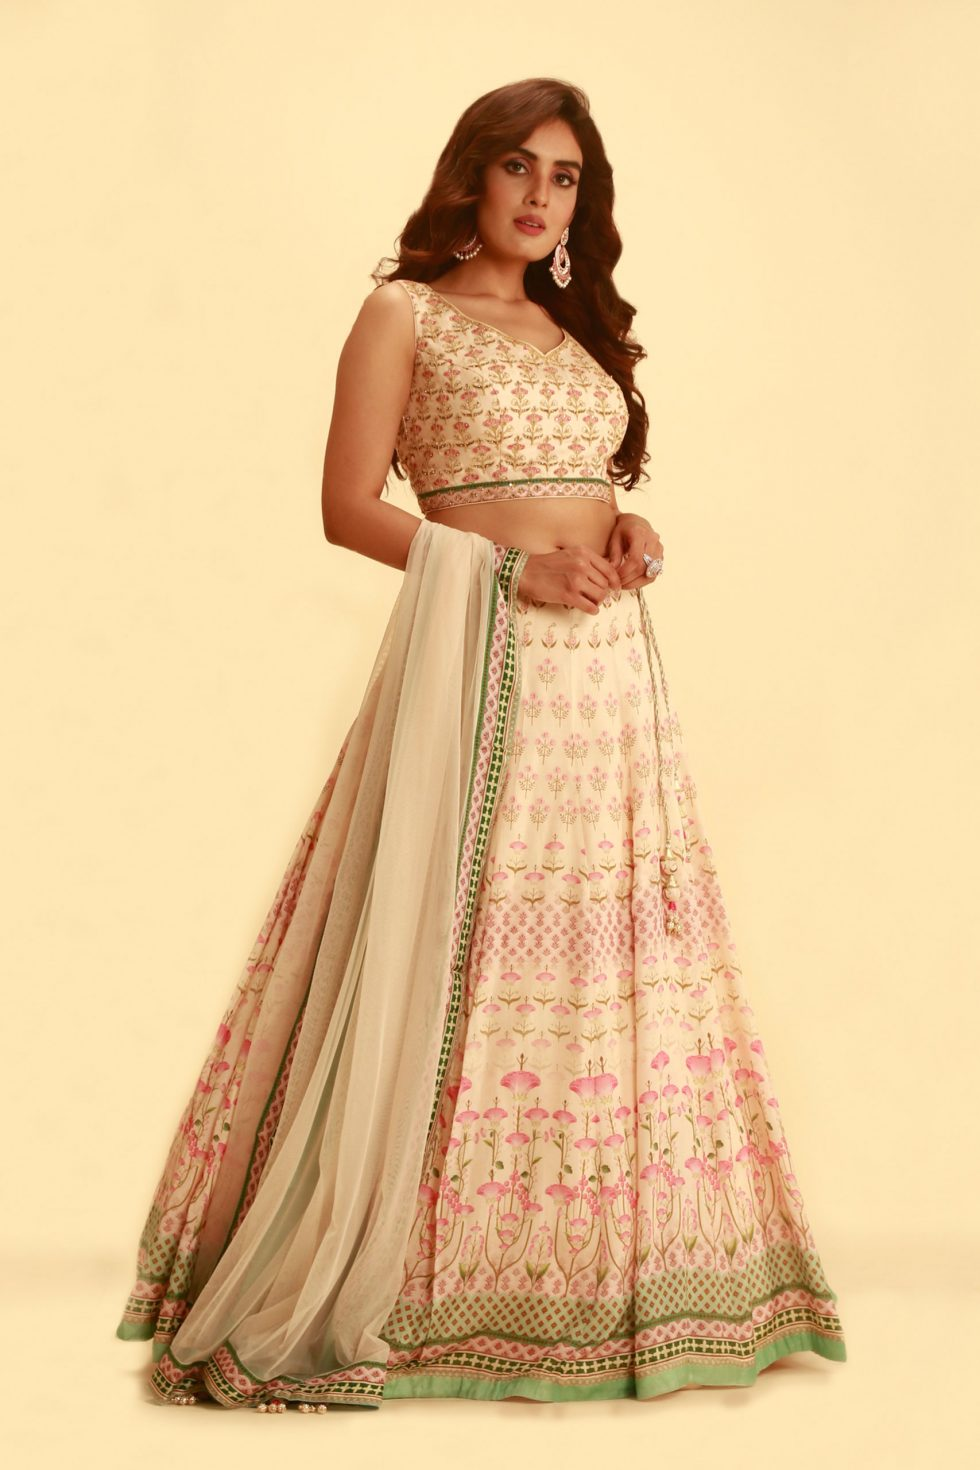 Baby pink printed lehenga set with contrast fern green colour and matching tulle dupatta